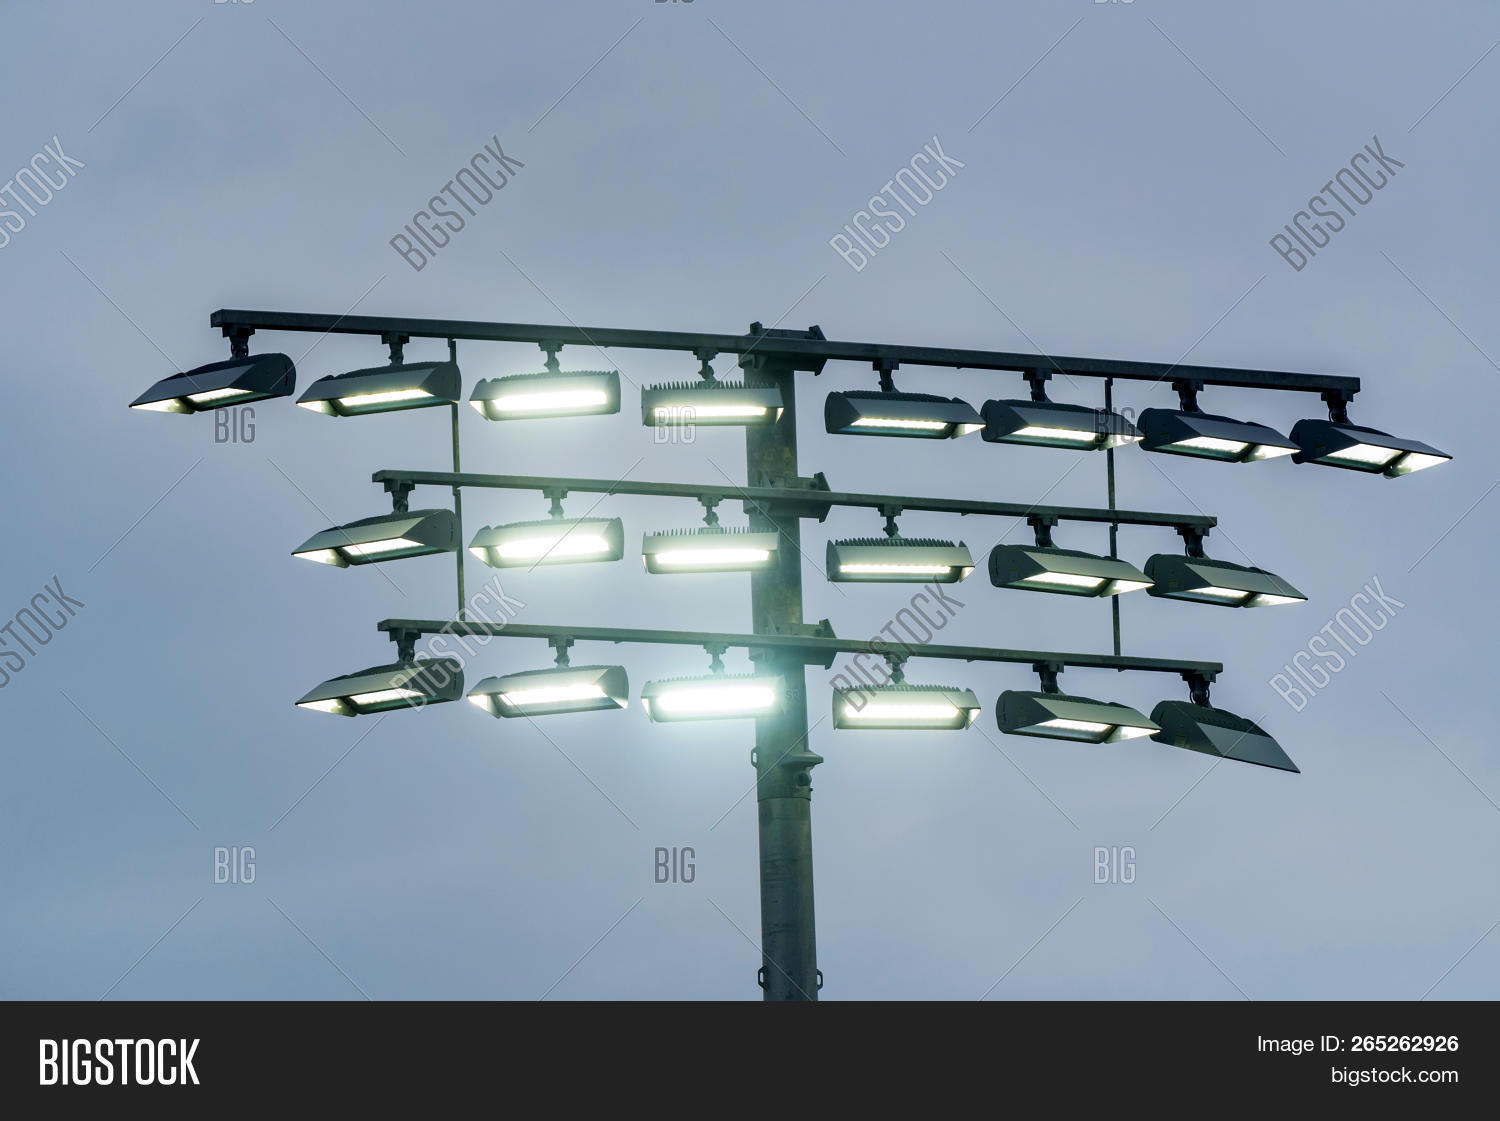 Airport Landing Lights Image & Photo (Free Trial) | Bigstock